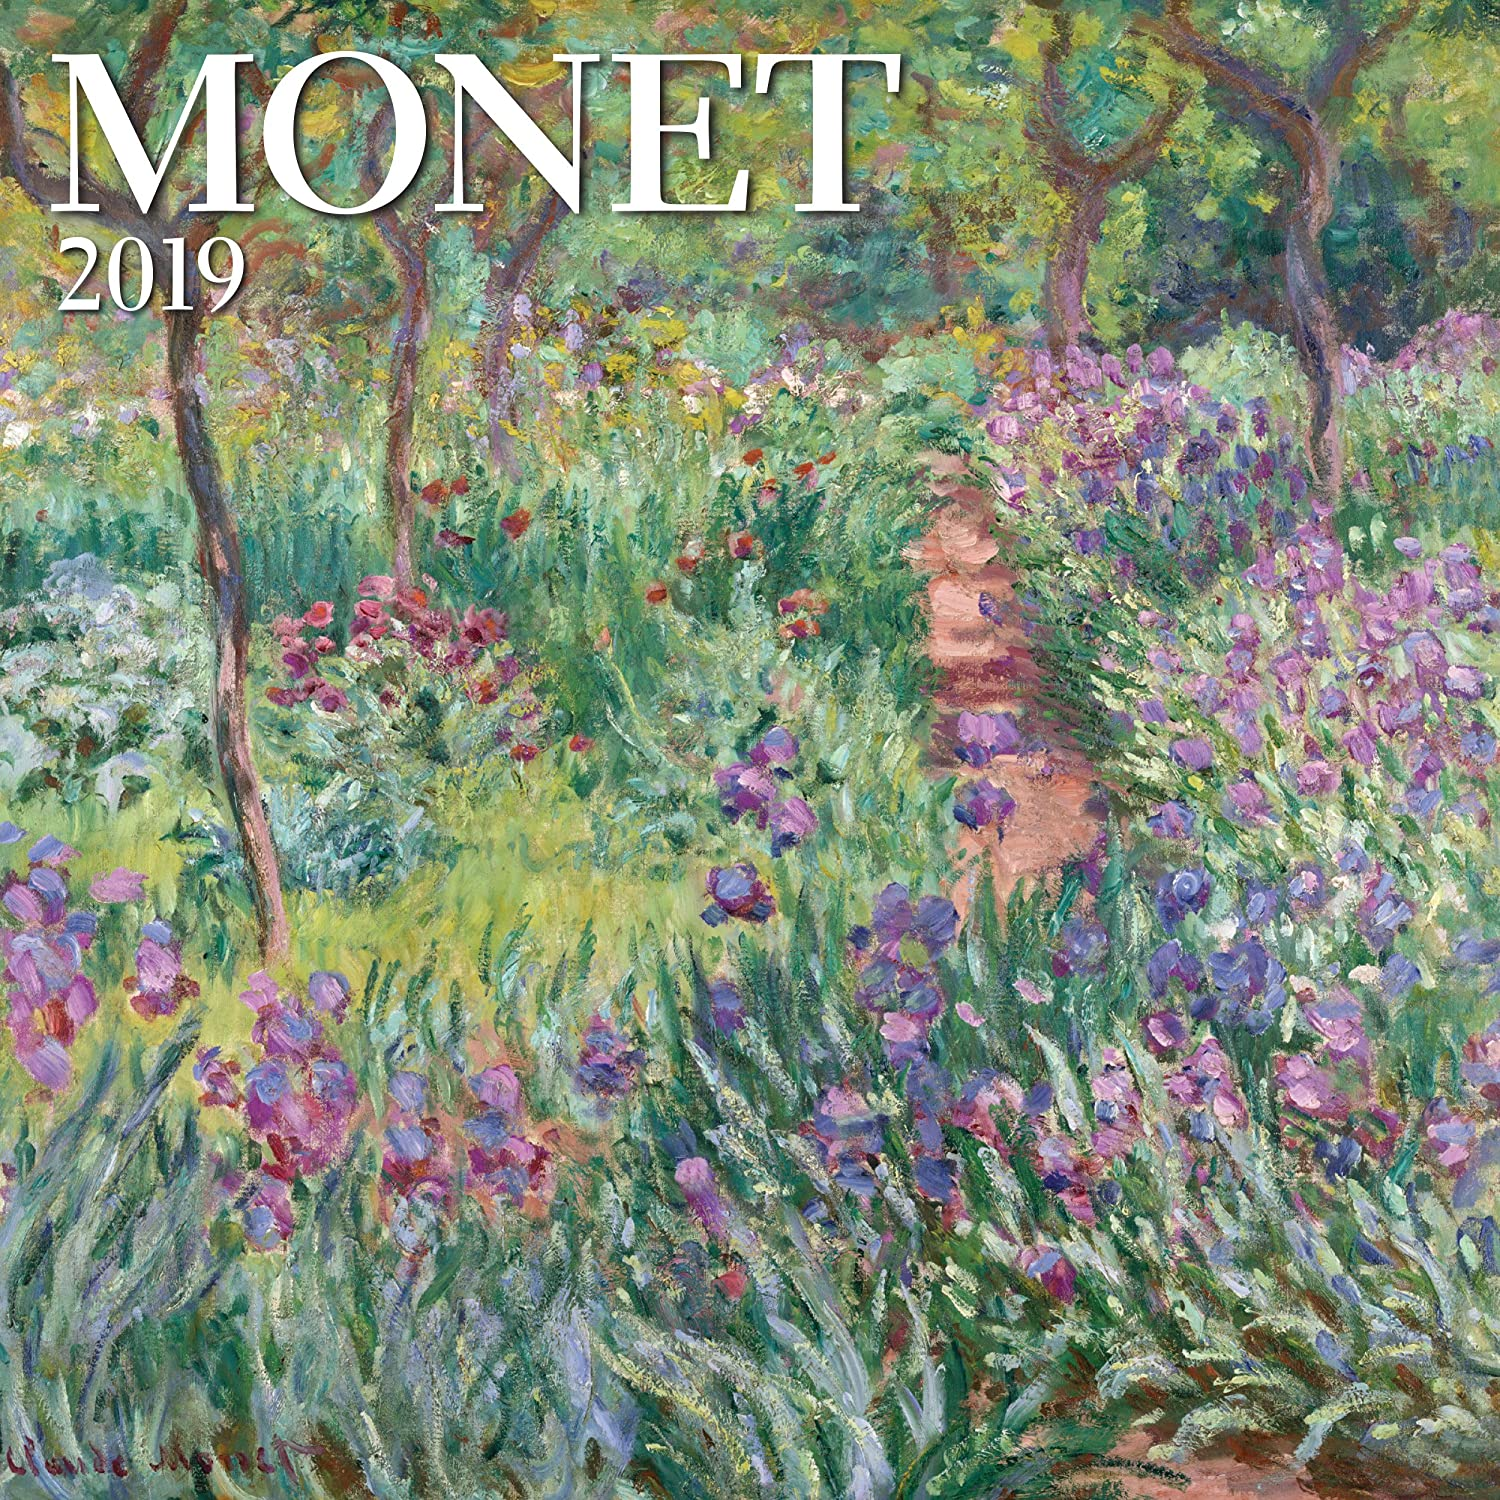 """Amazon.com : Monet Mini Wall Calendar 2019 Monthly January-December 7"""" x 7""""  : Office Products"""